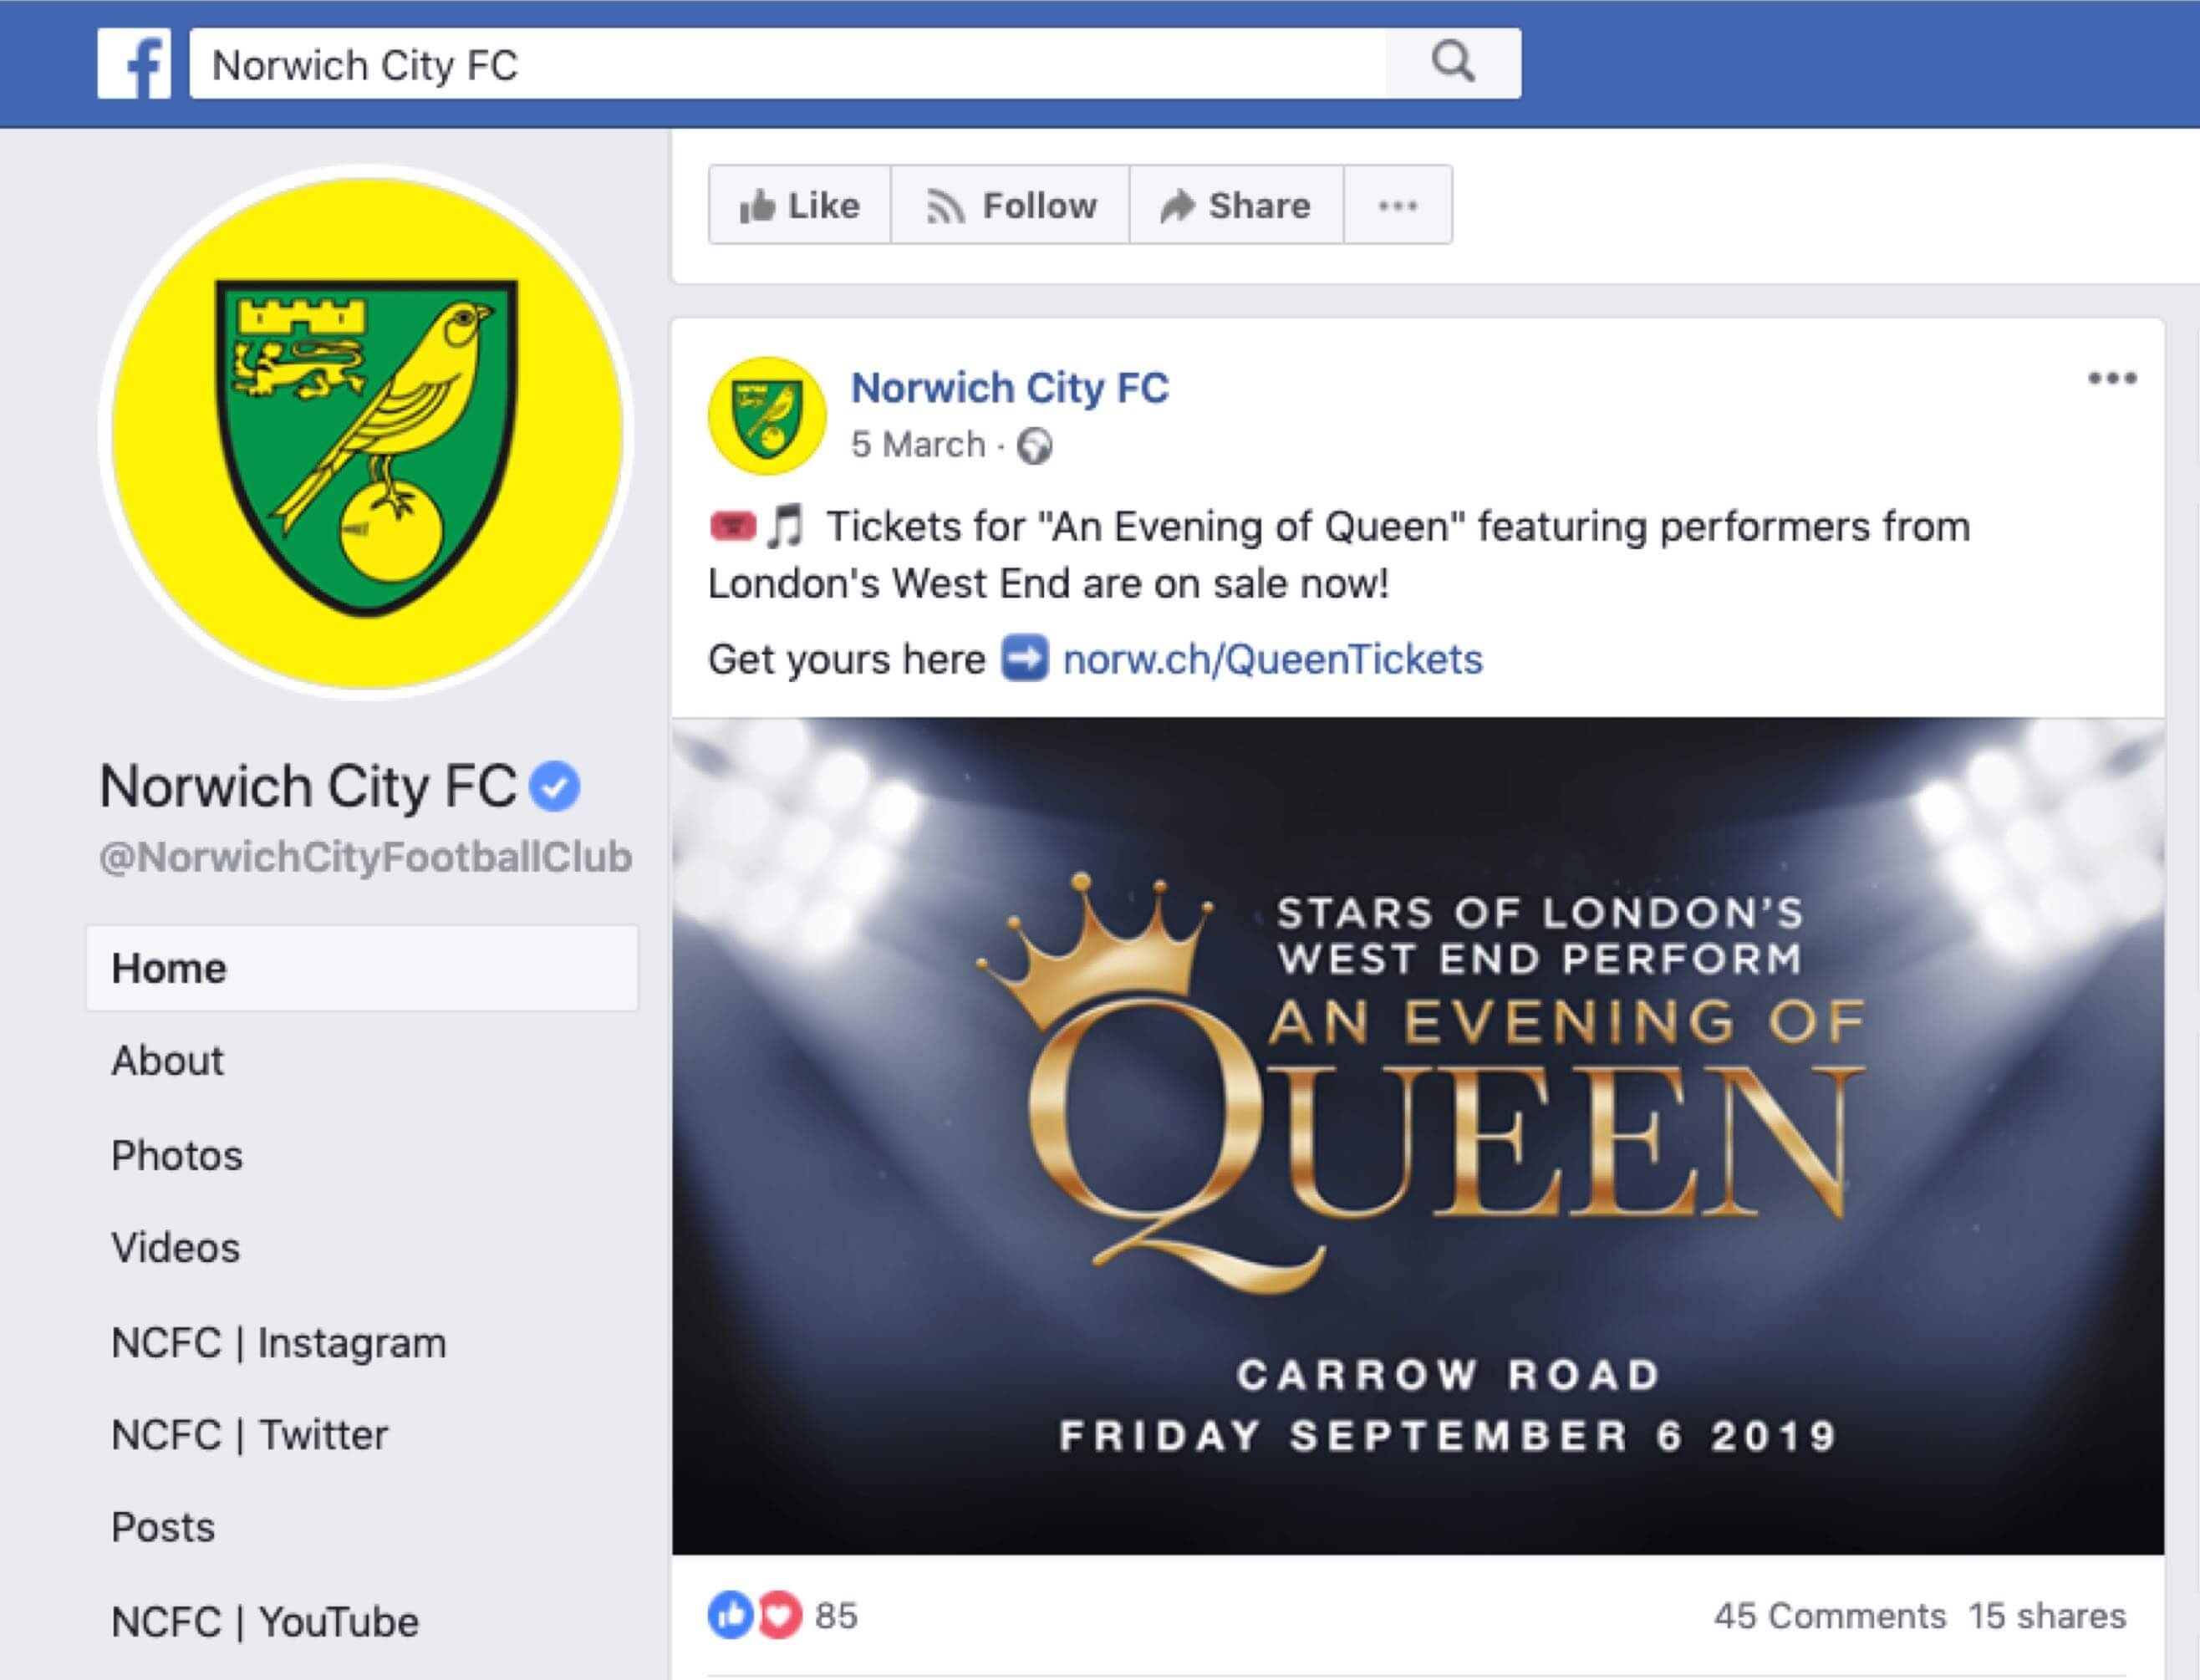 An image of the Facebook advert for Norwich City FC's Evening of Queen event.